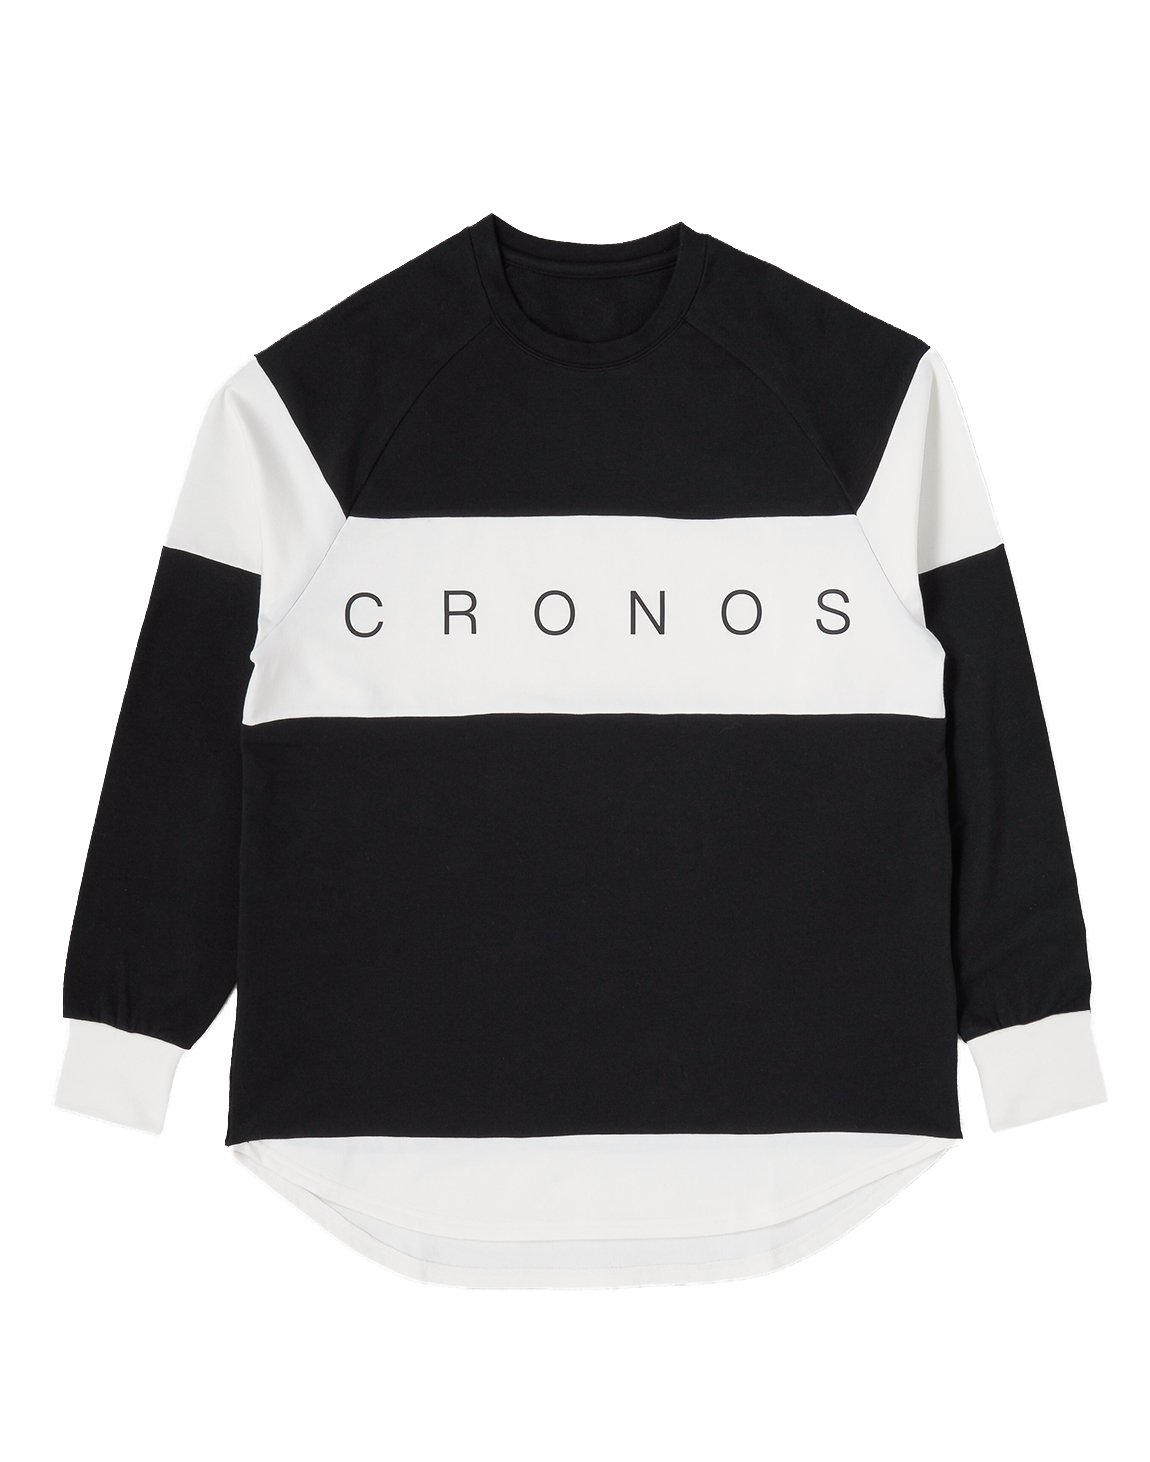 <img class='new_mark_img1' src='https://img.shop-pro.jp/img/new/icons1.gif' style='border:none;display:inline;margin:0px;padding:0px;width:auto;' />CRONOS Bi-COLOR  LONG SLEEVE【BLACK】